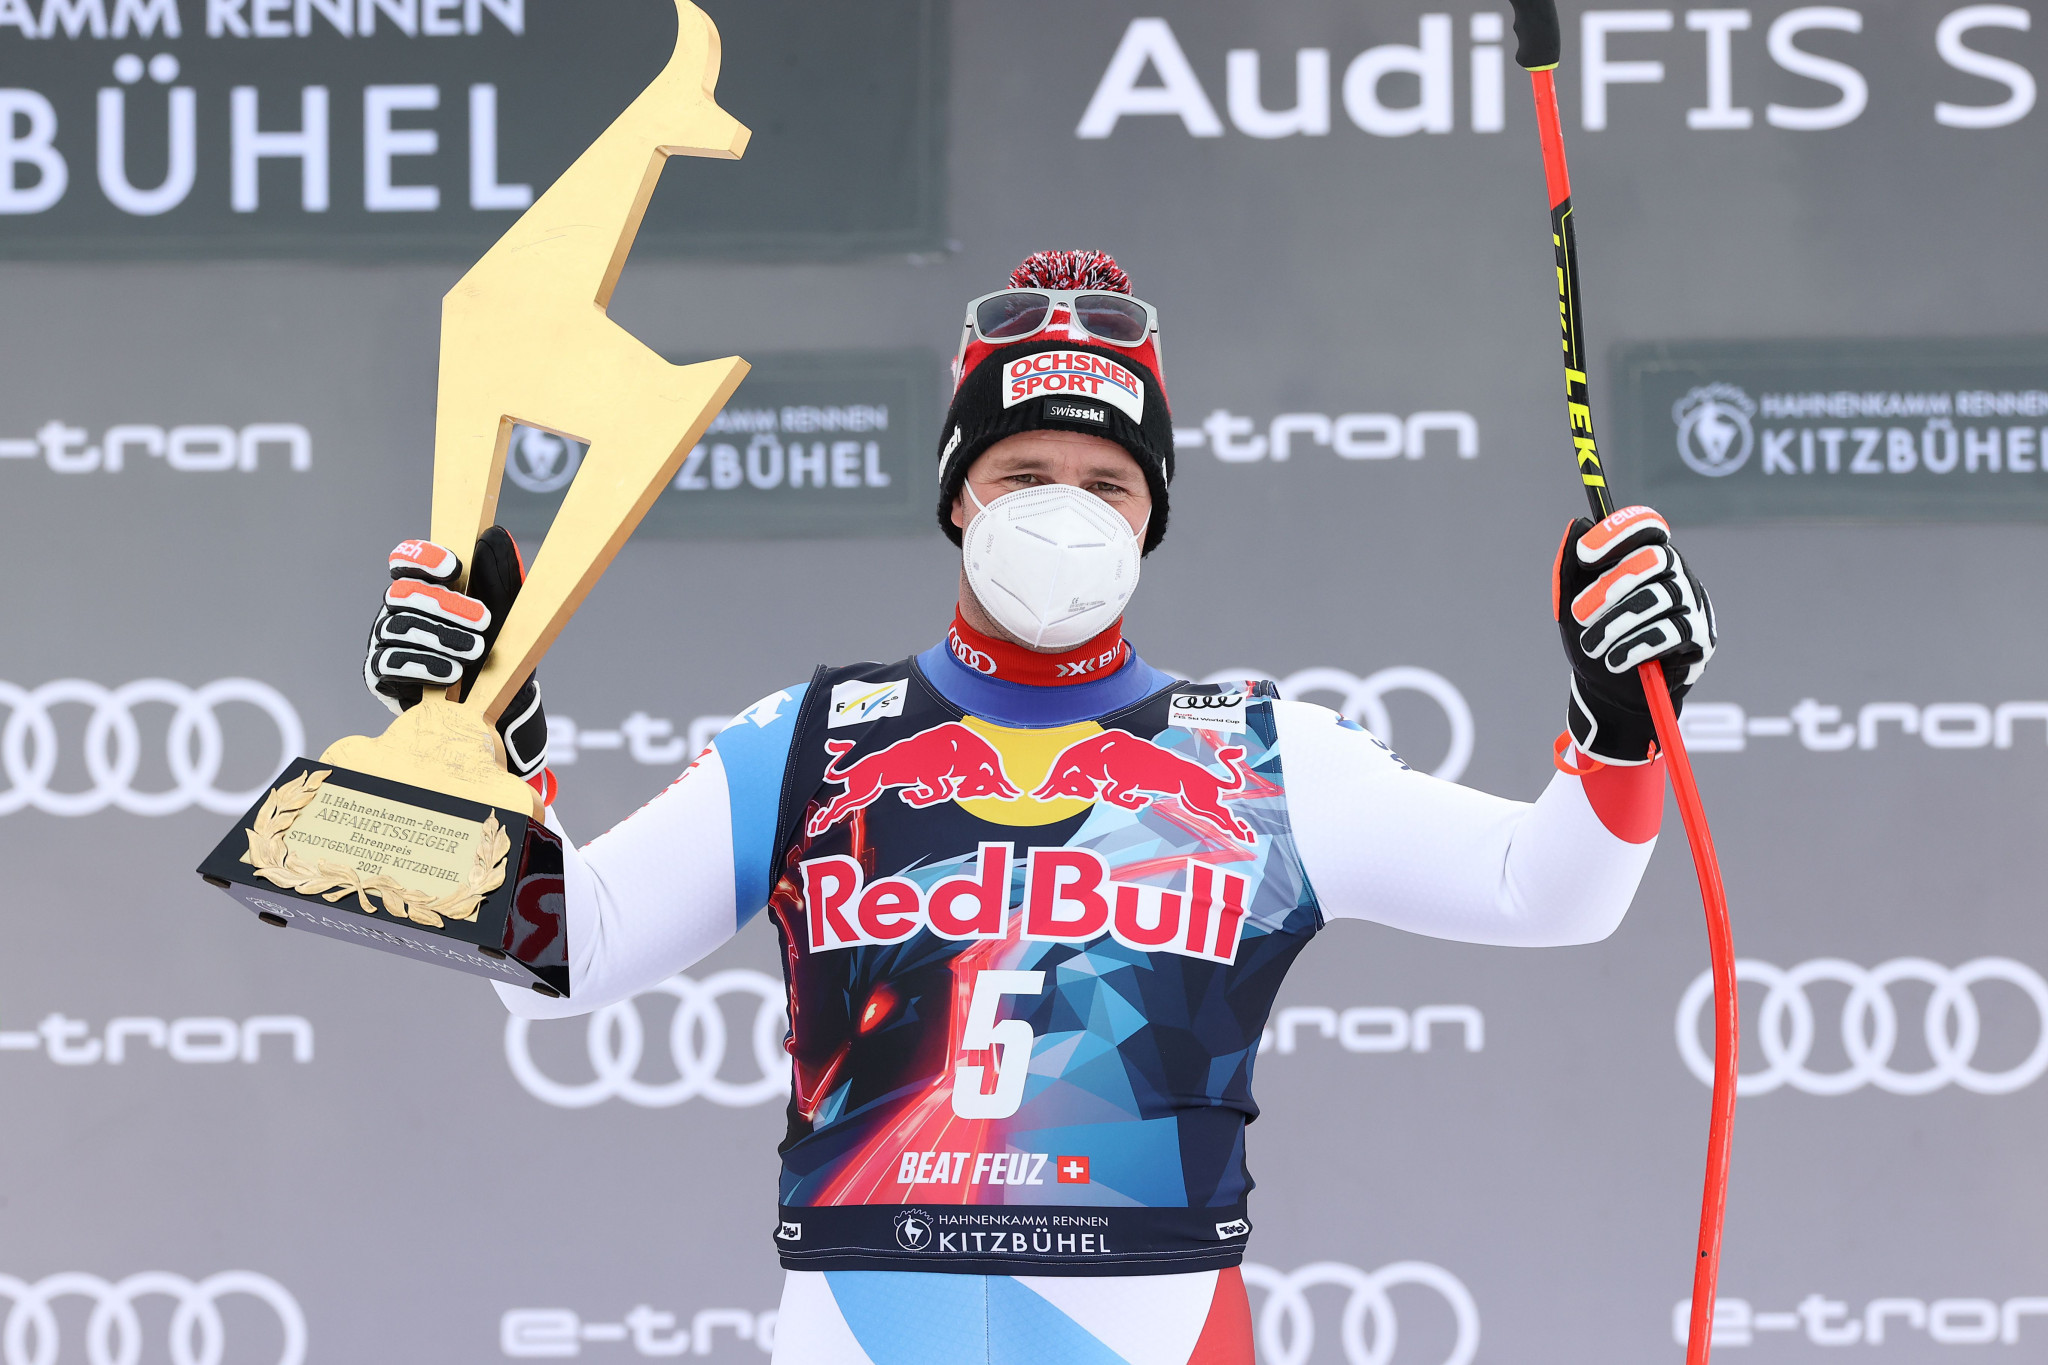 Feuz finally wins Kitzbühel downhill but Kryenbuhl airlifted to hospital